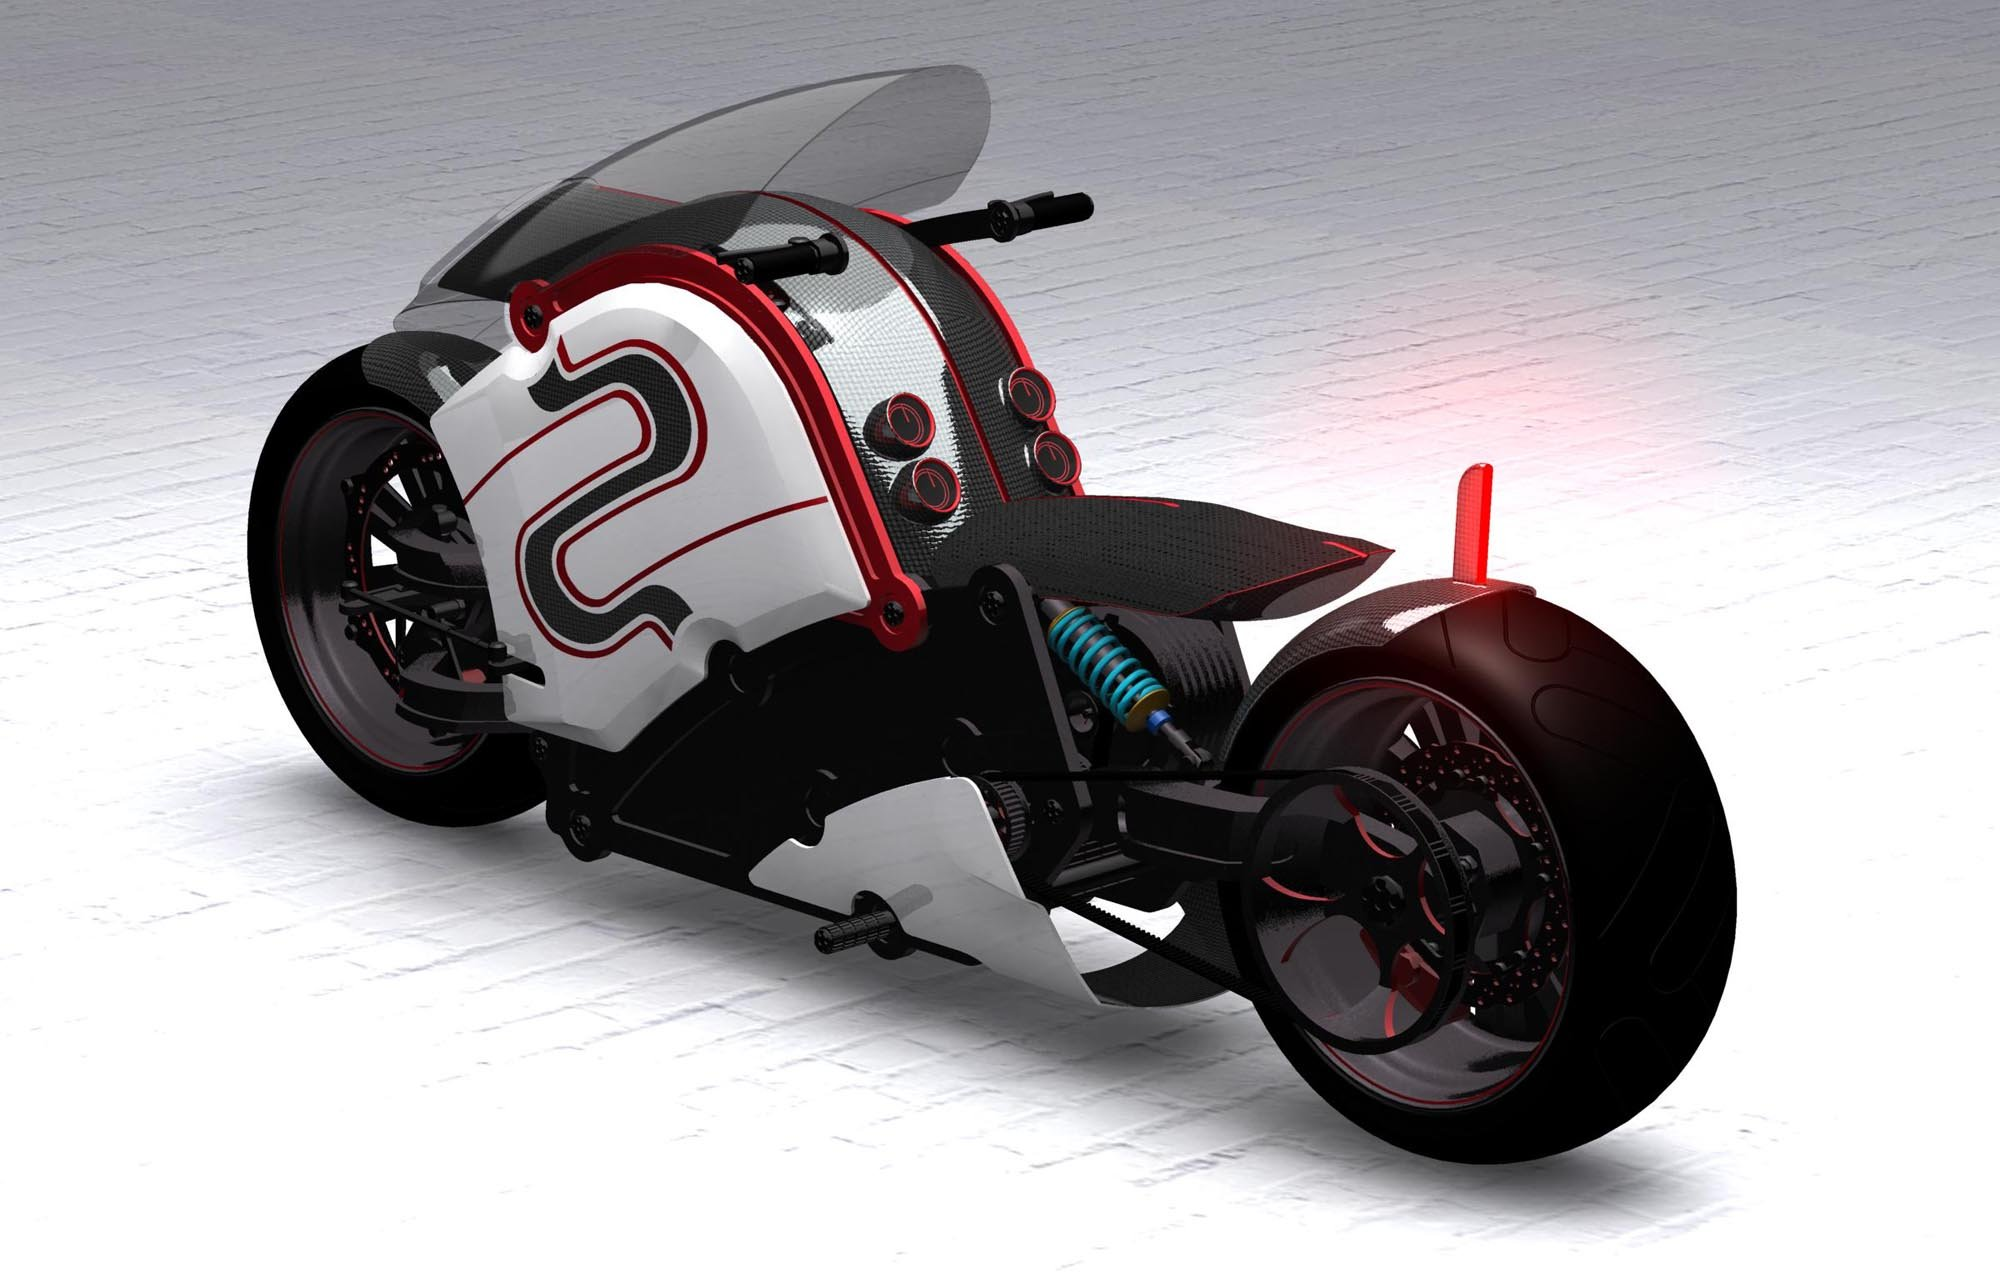 zecOO ELECTRIC superbike bike concept motorbike motorcycle 1zecoo custom g